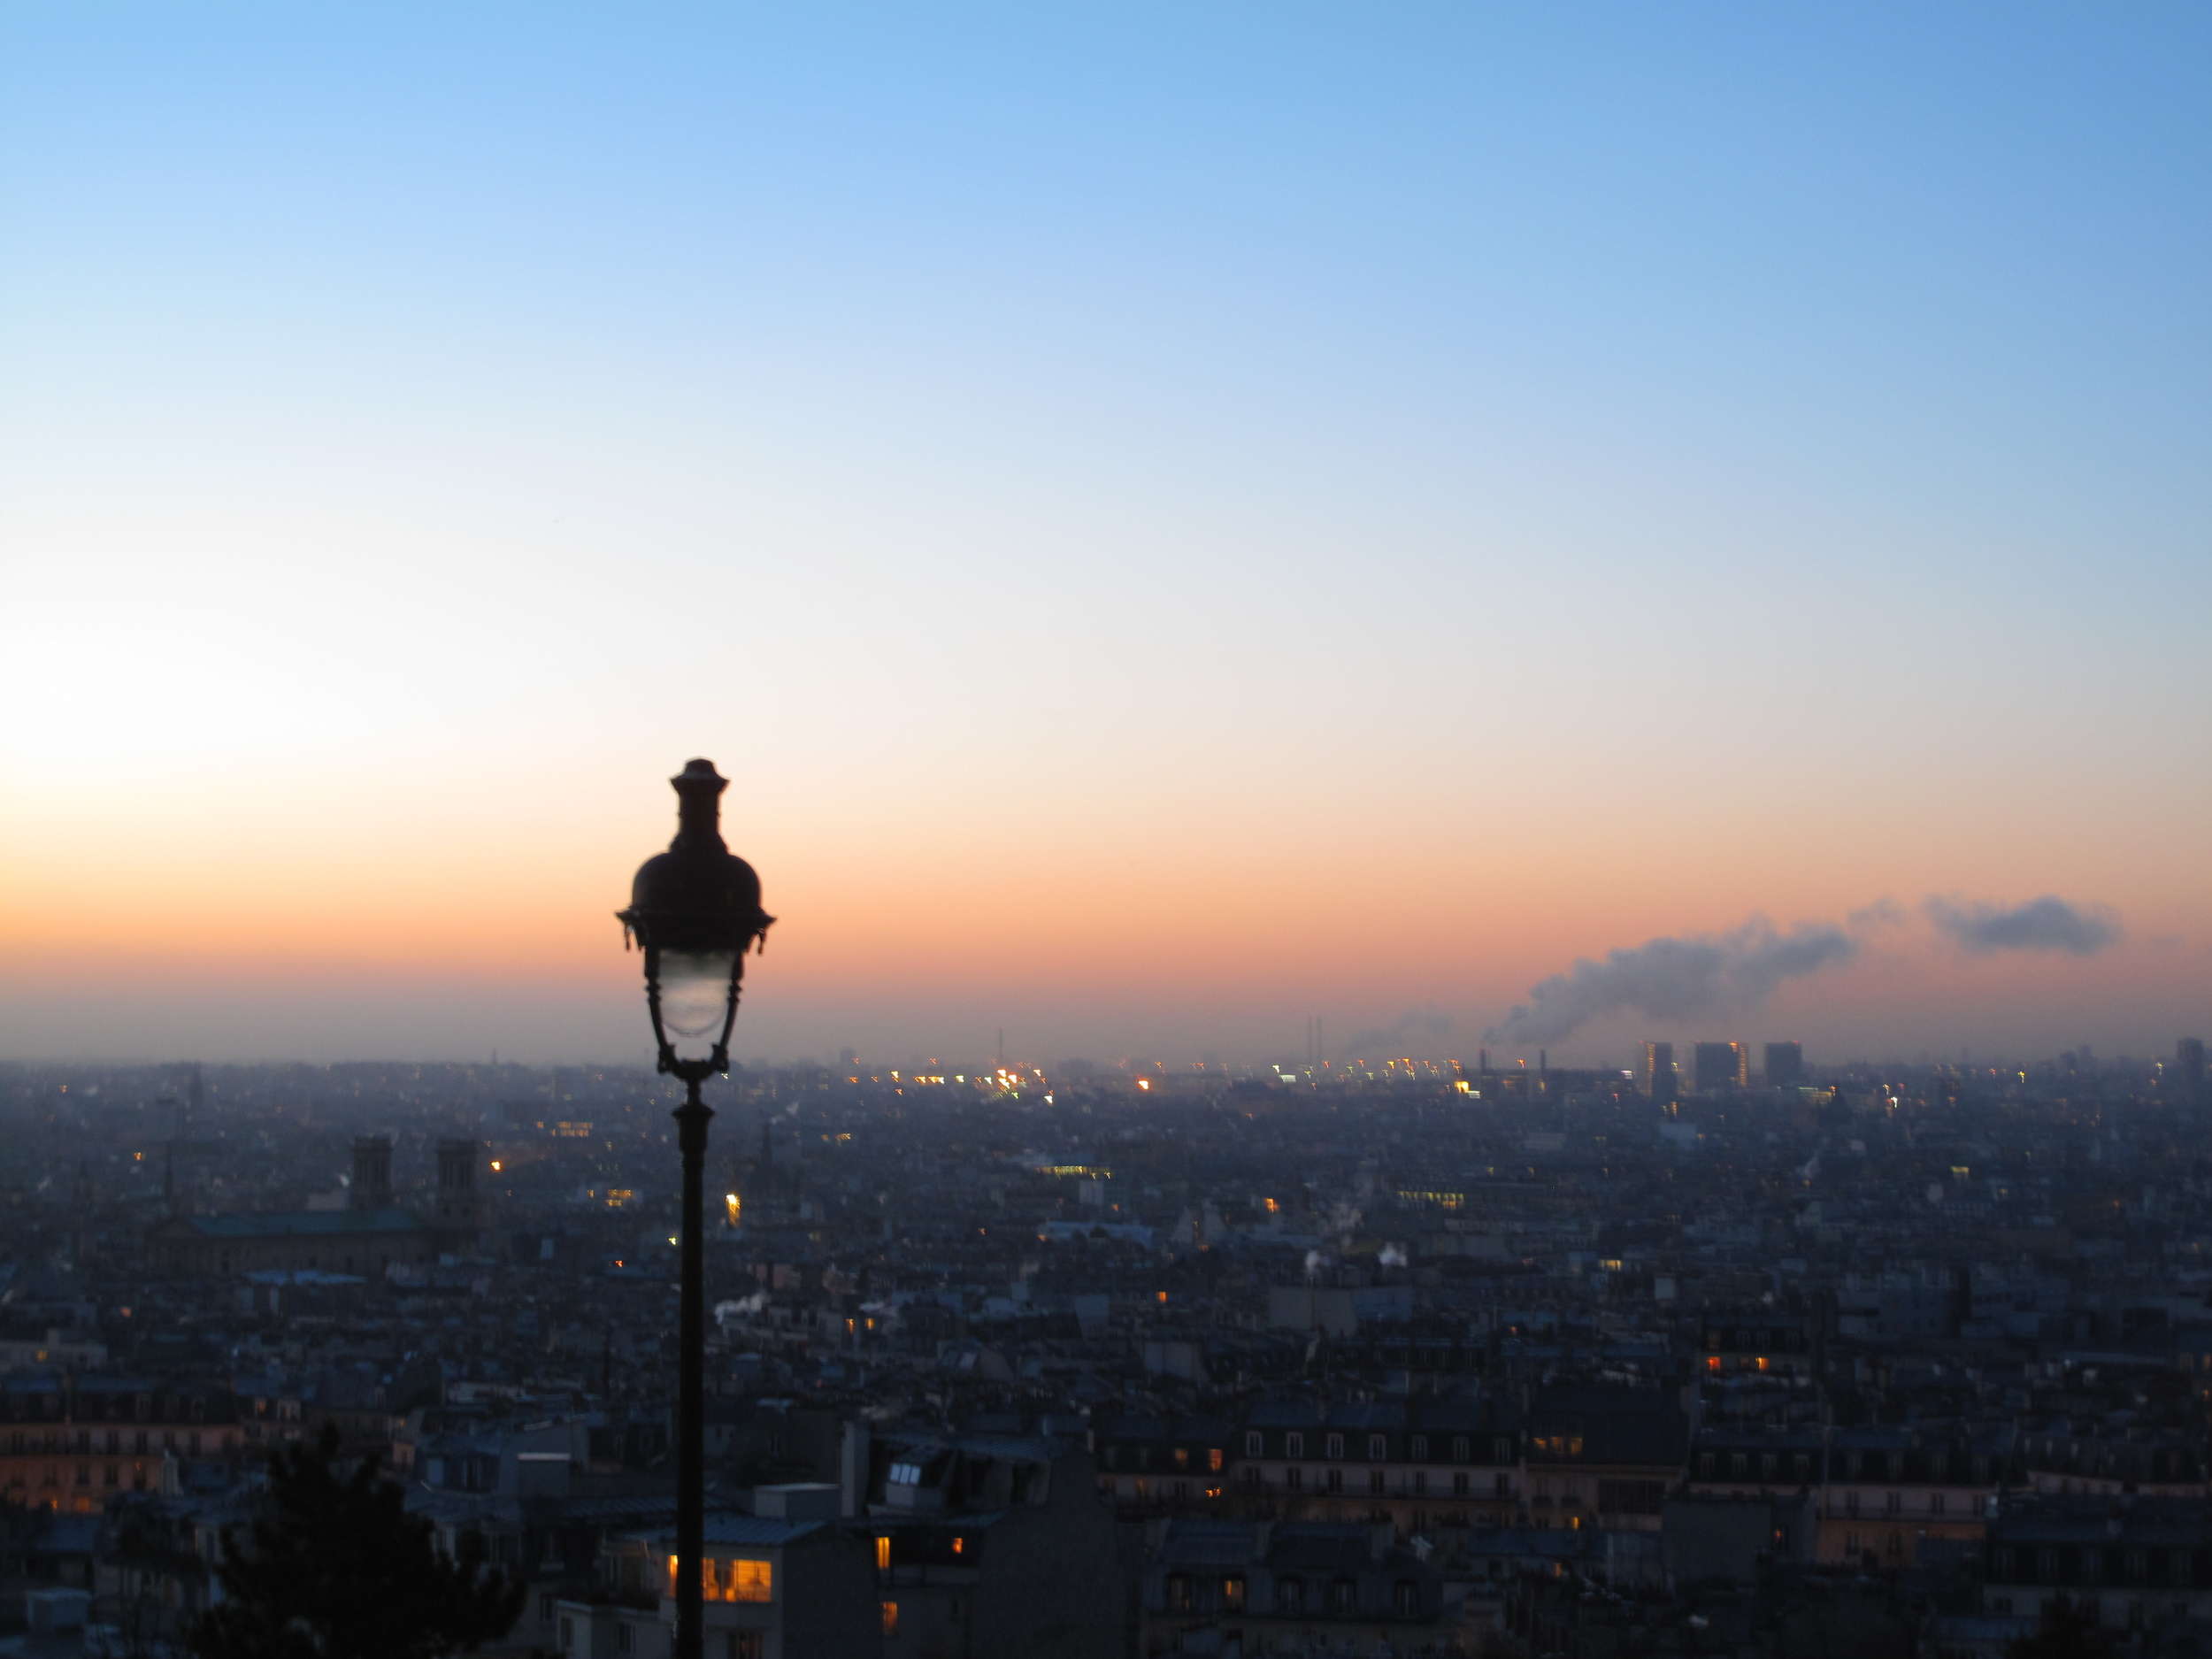 Sunrise over the city of Paris, lamps still lit in a dusky pink dawn